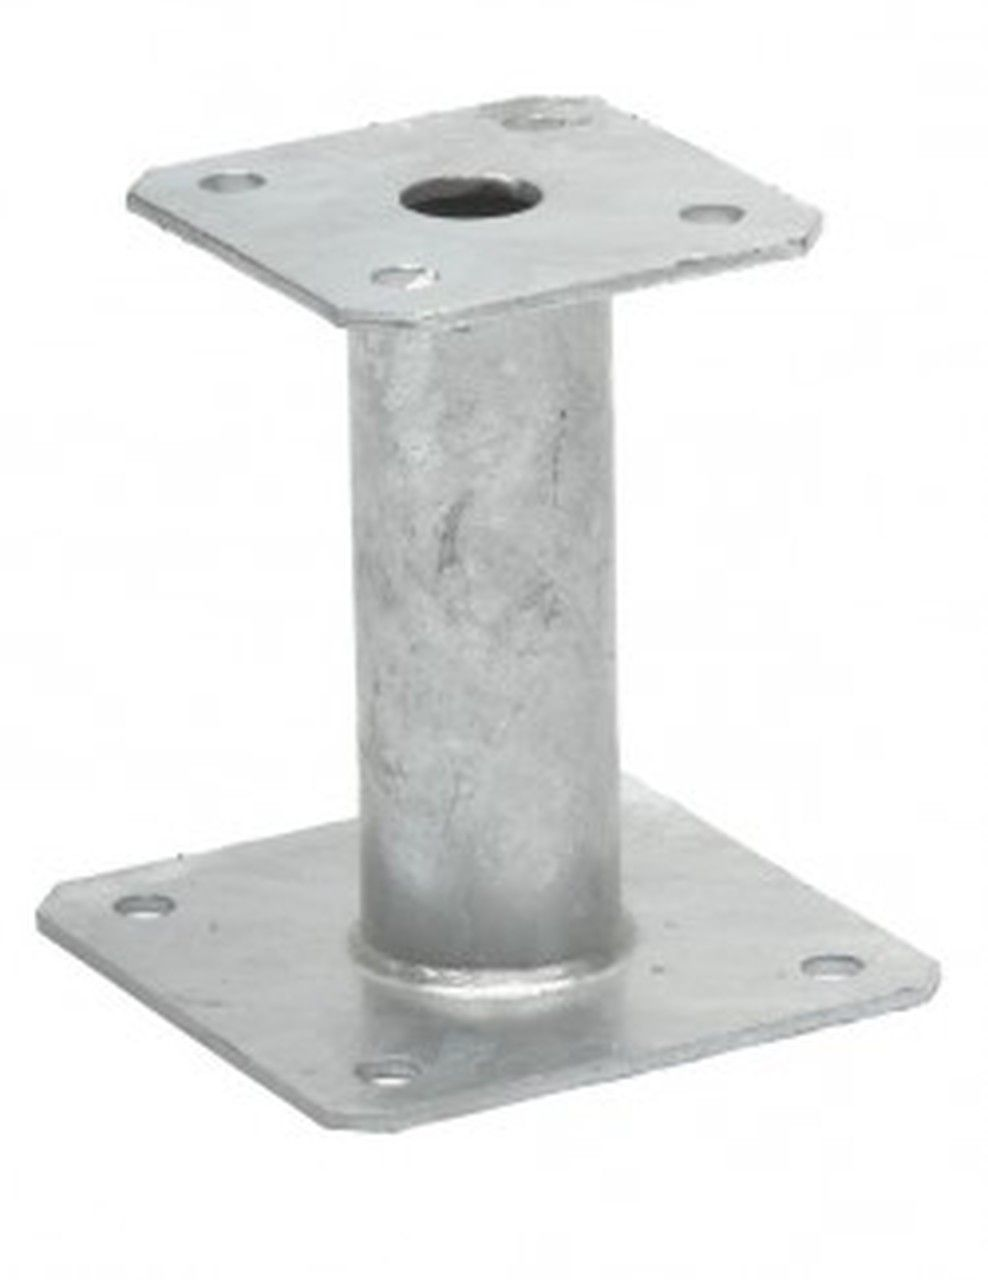 Simpson Strong Tie Elevated Post Base Ppa100 In 2020 Stainless Steel Fasteners Wood Laminate Galvanized Steel